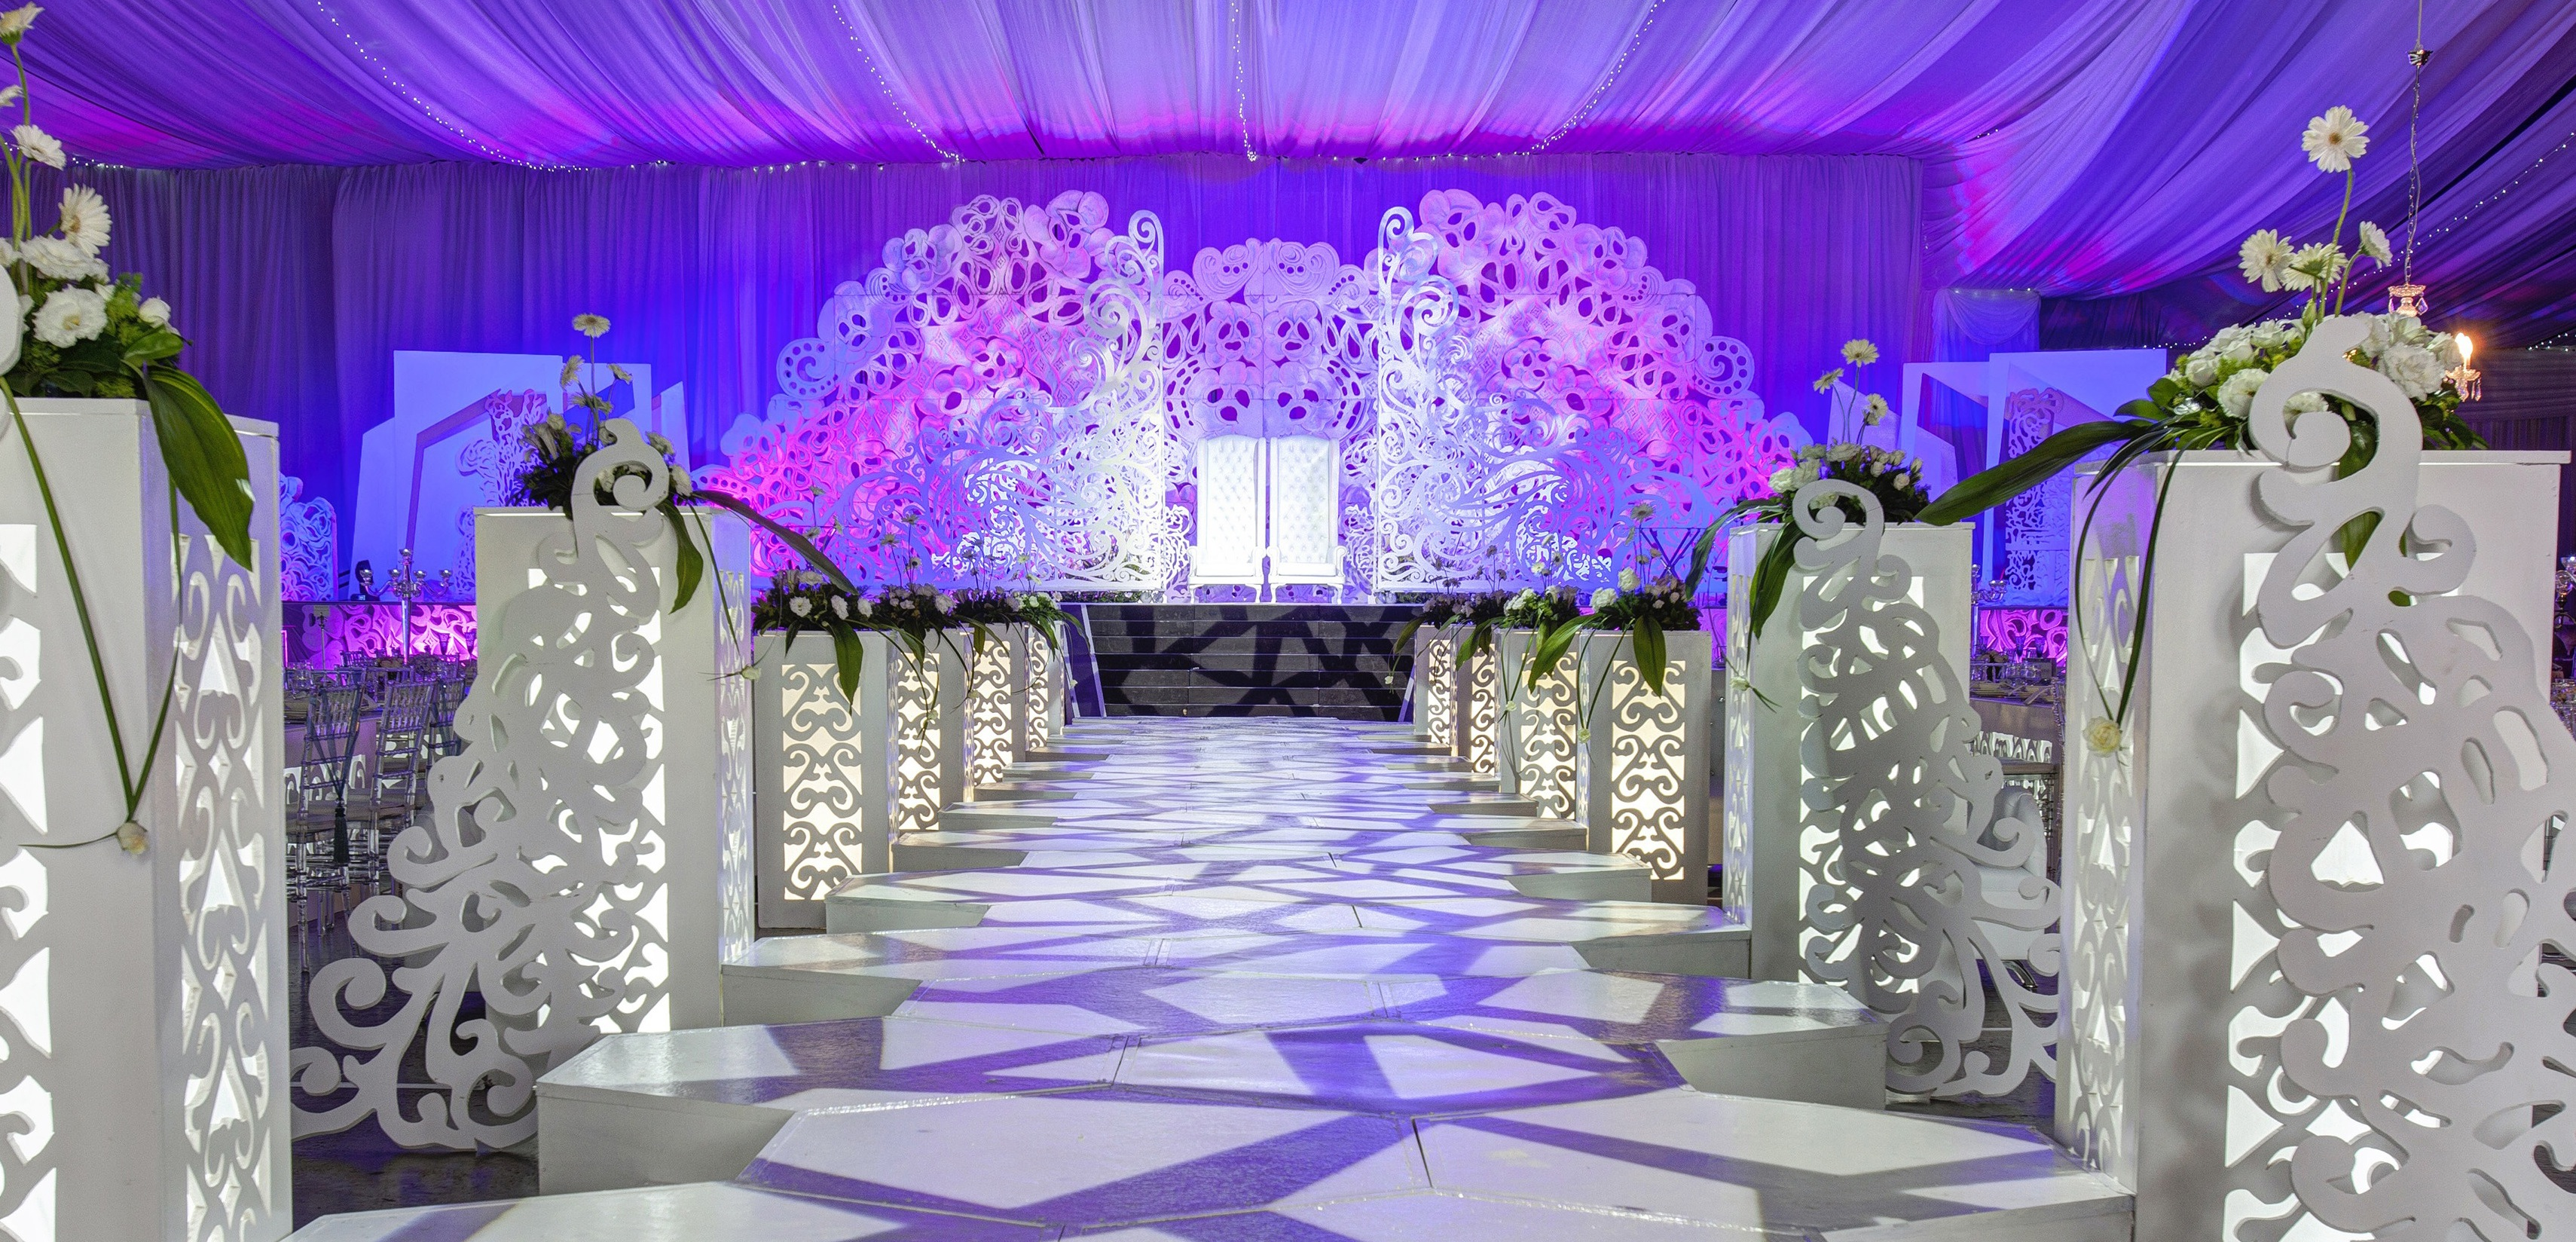 Muslim Wedding Decor Company Durban Koogan Pillay Wedding Decor